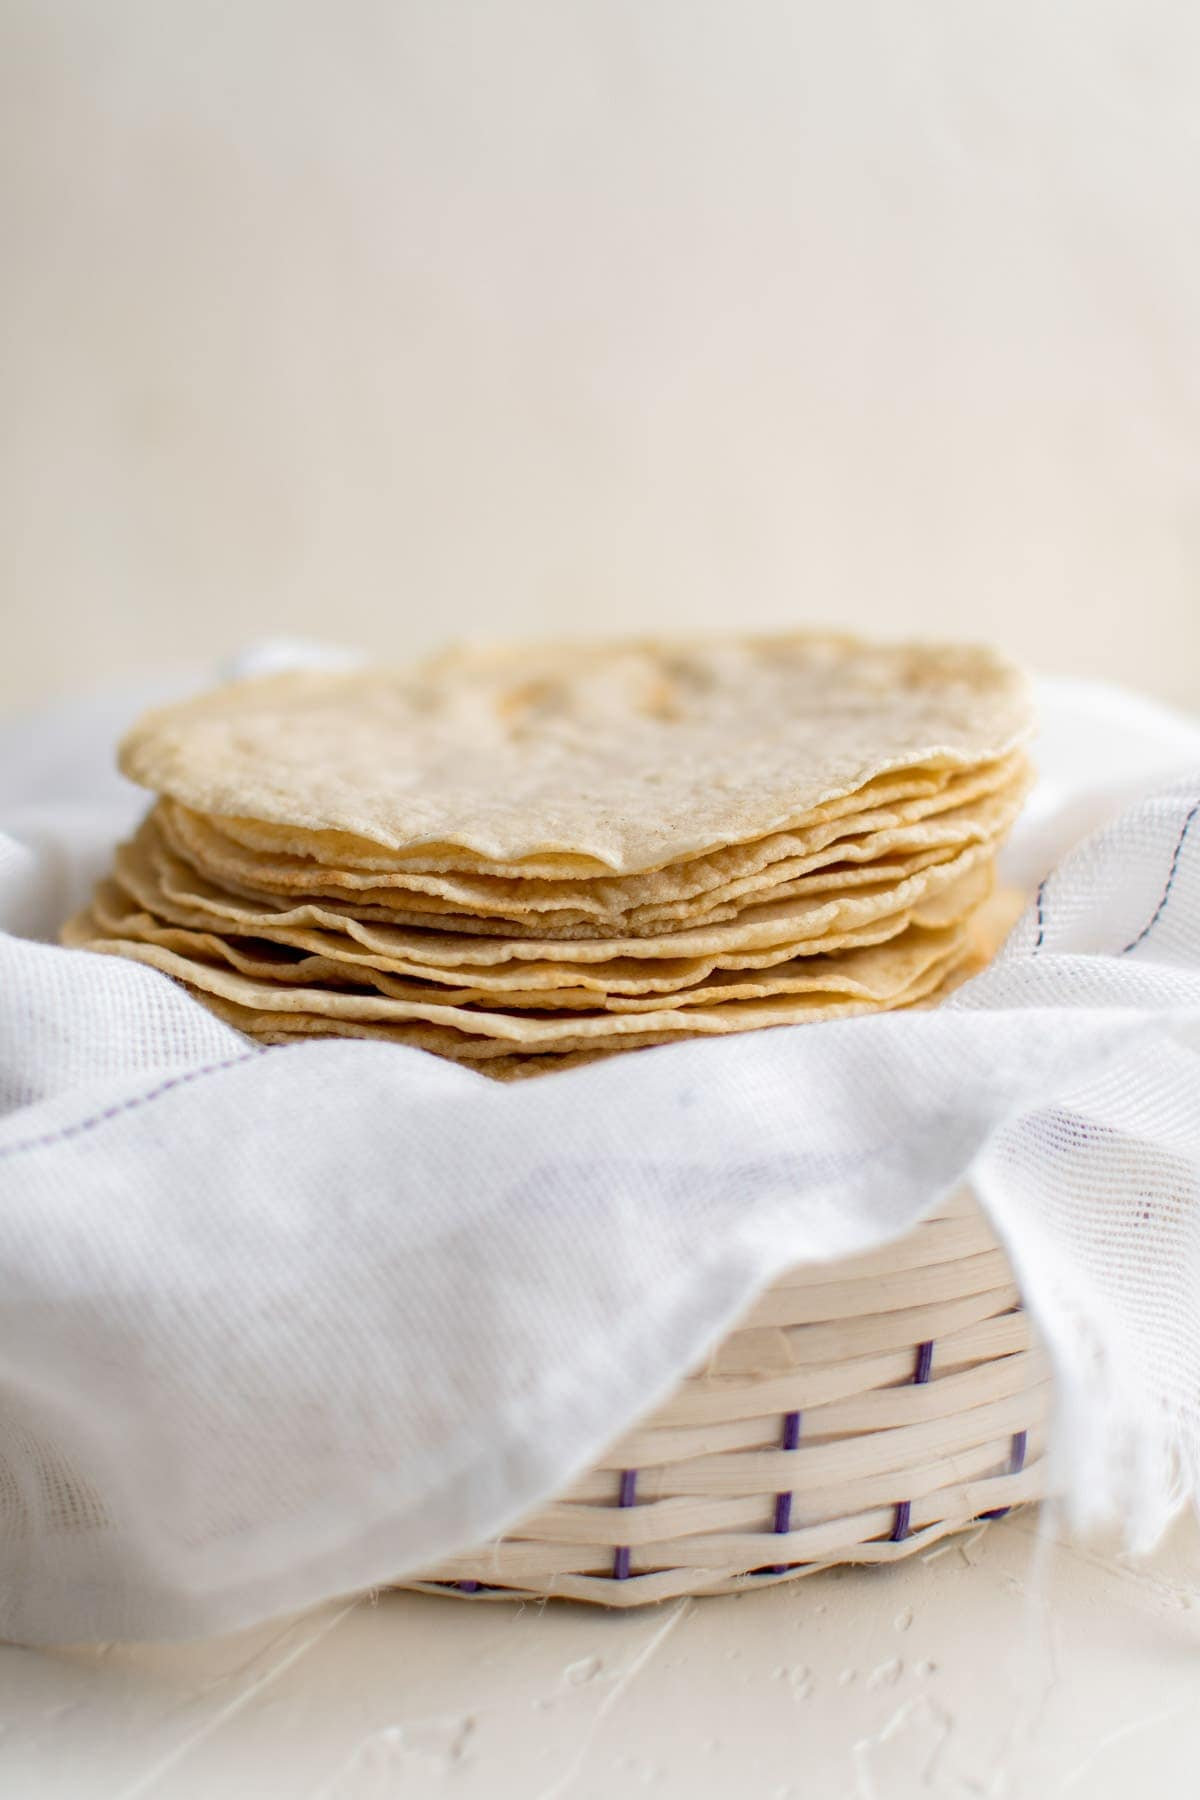 corn tortillas stacked in a white basket with a white towel